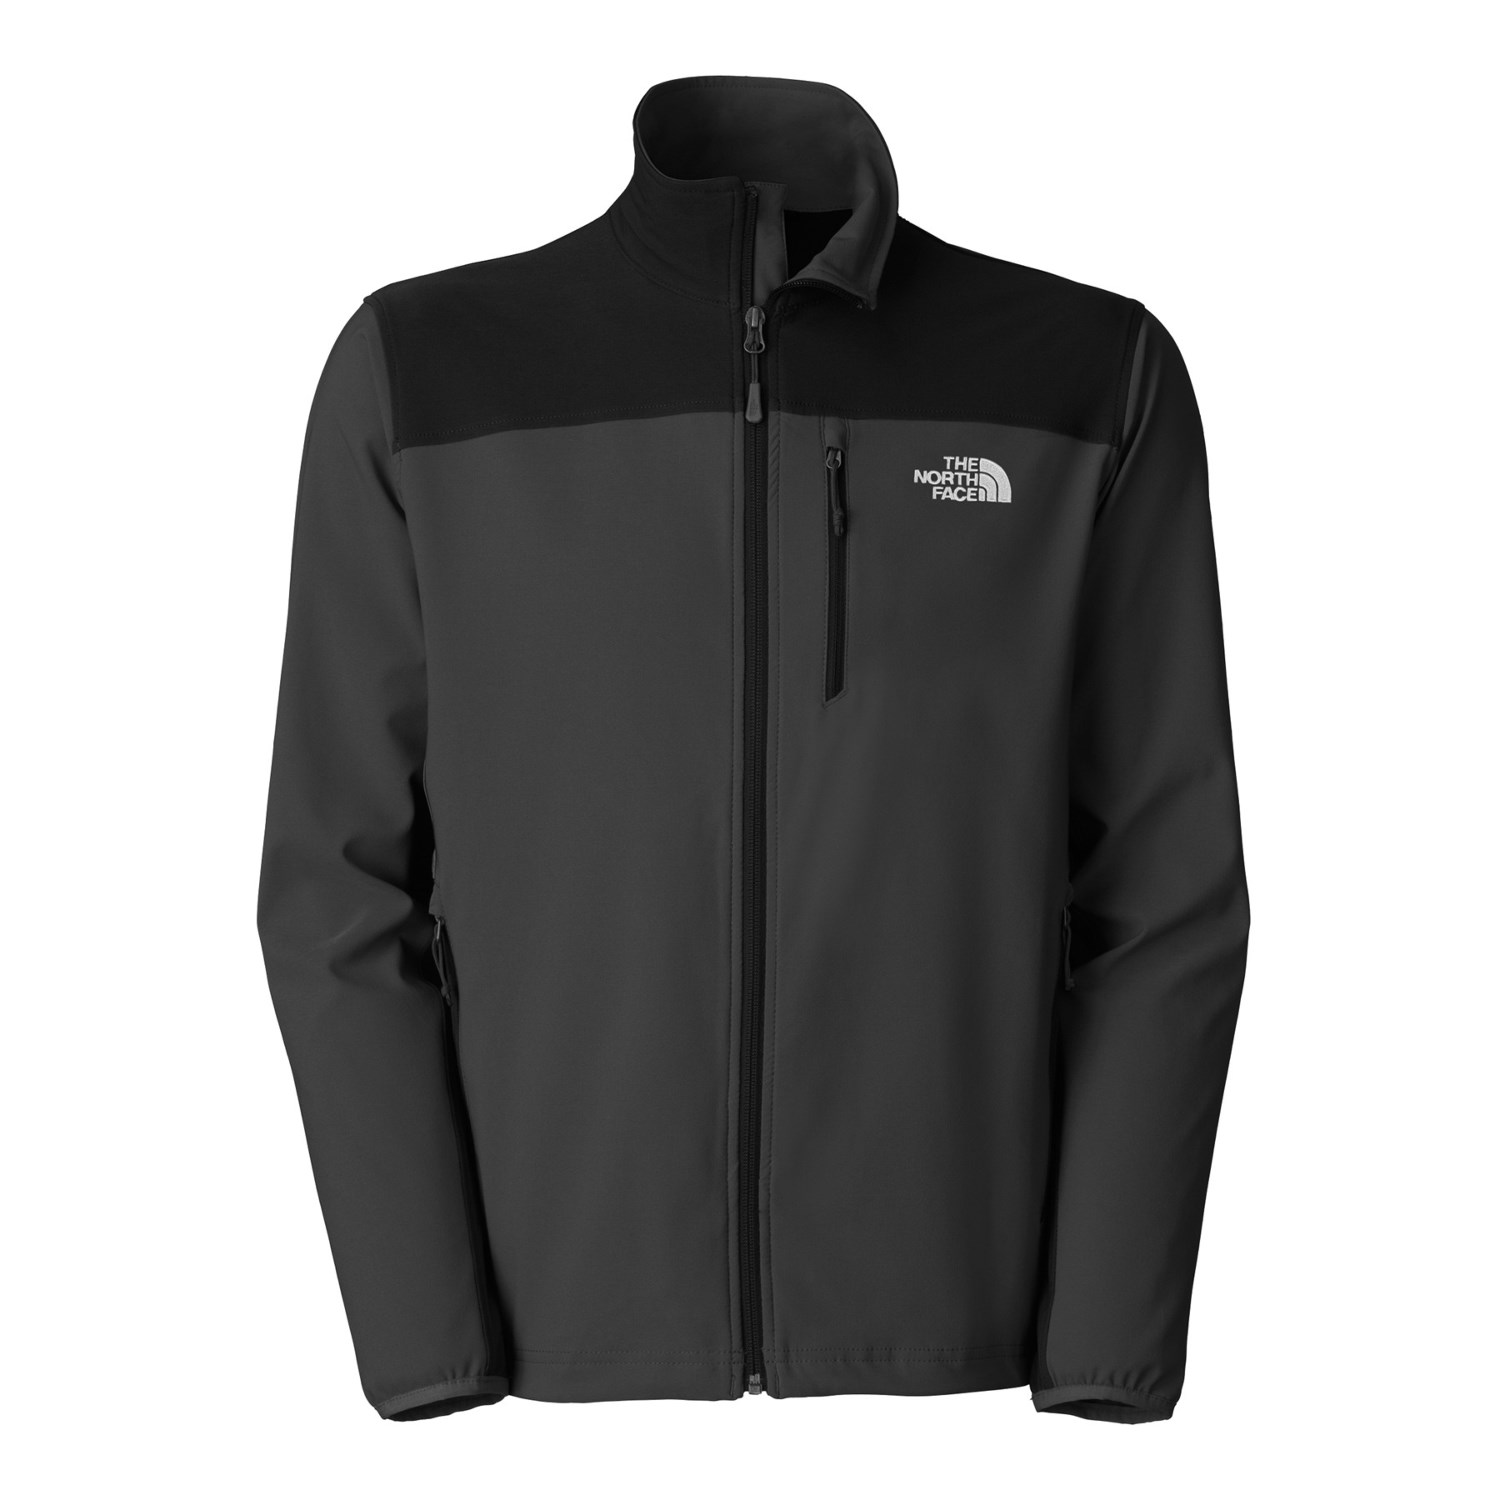 the north face mens nimble softshell jacket hoodie full. Black Bedroom Furniture Sets. Home Design Ideas